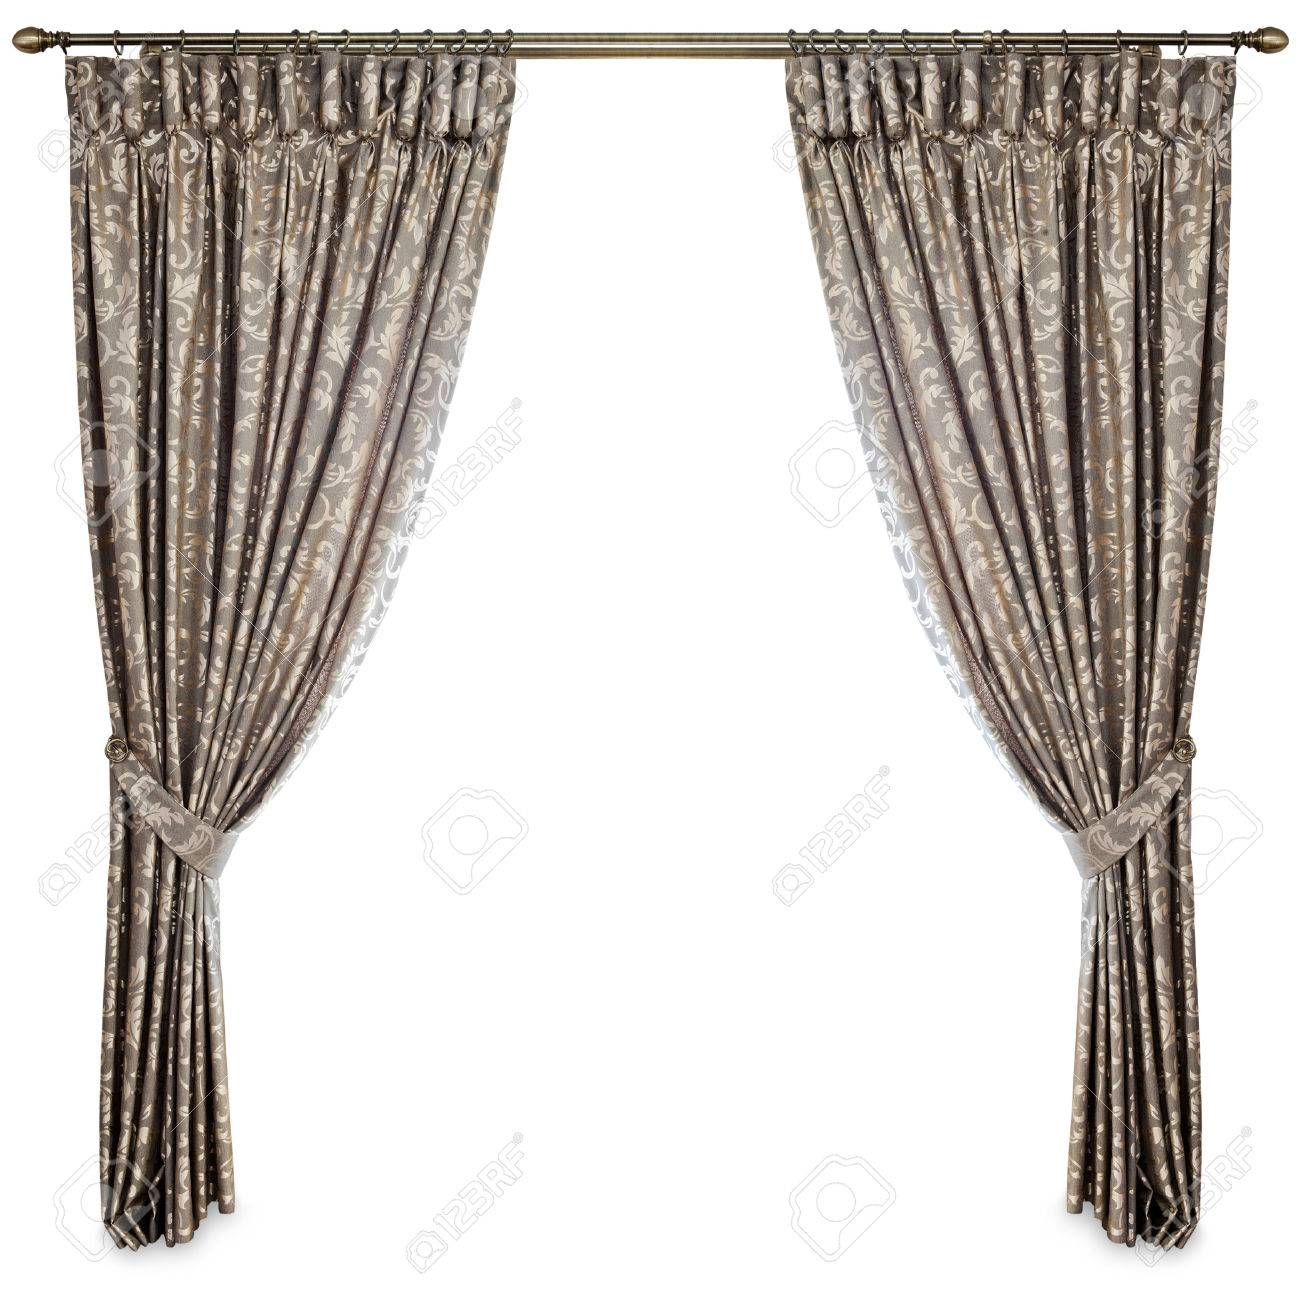 Curtains On A White Background Stock Photo, Picture And Royalty